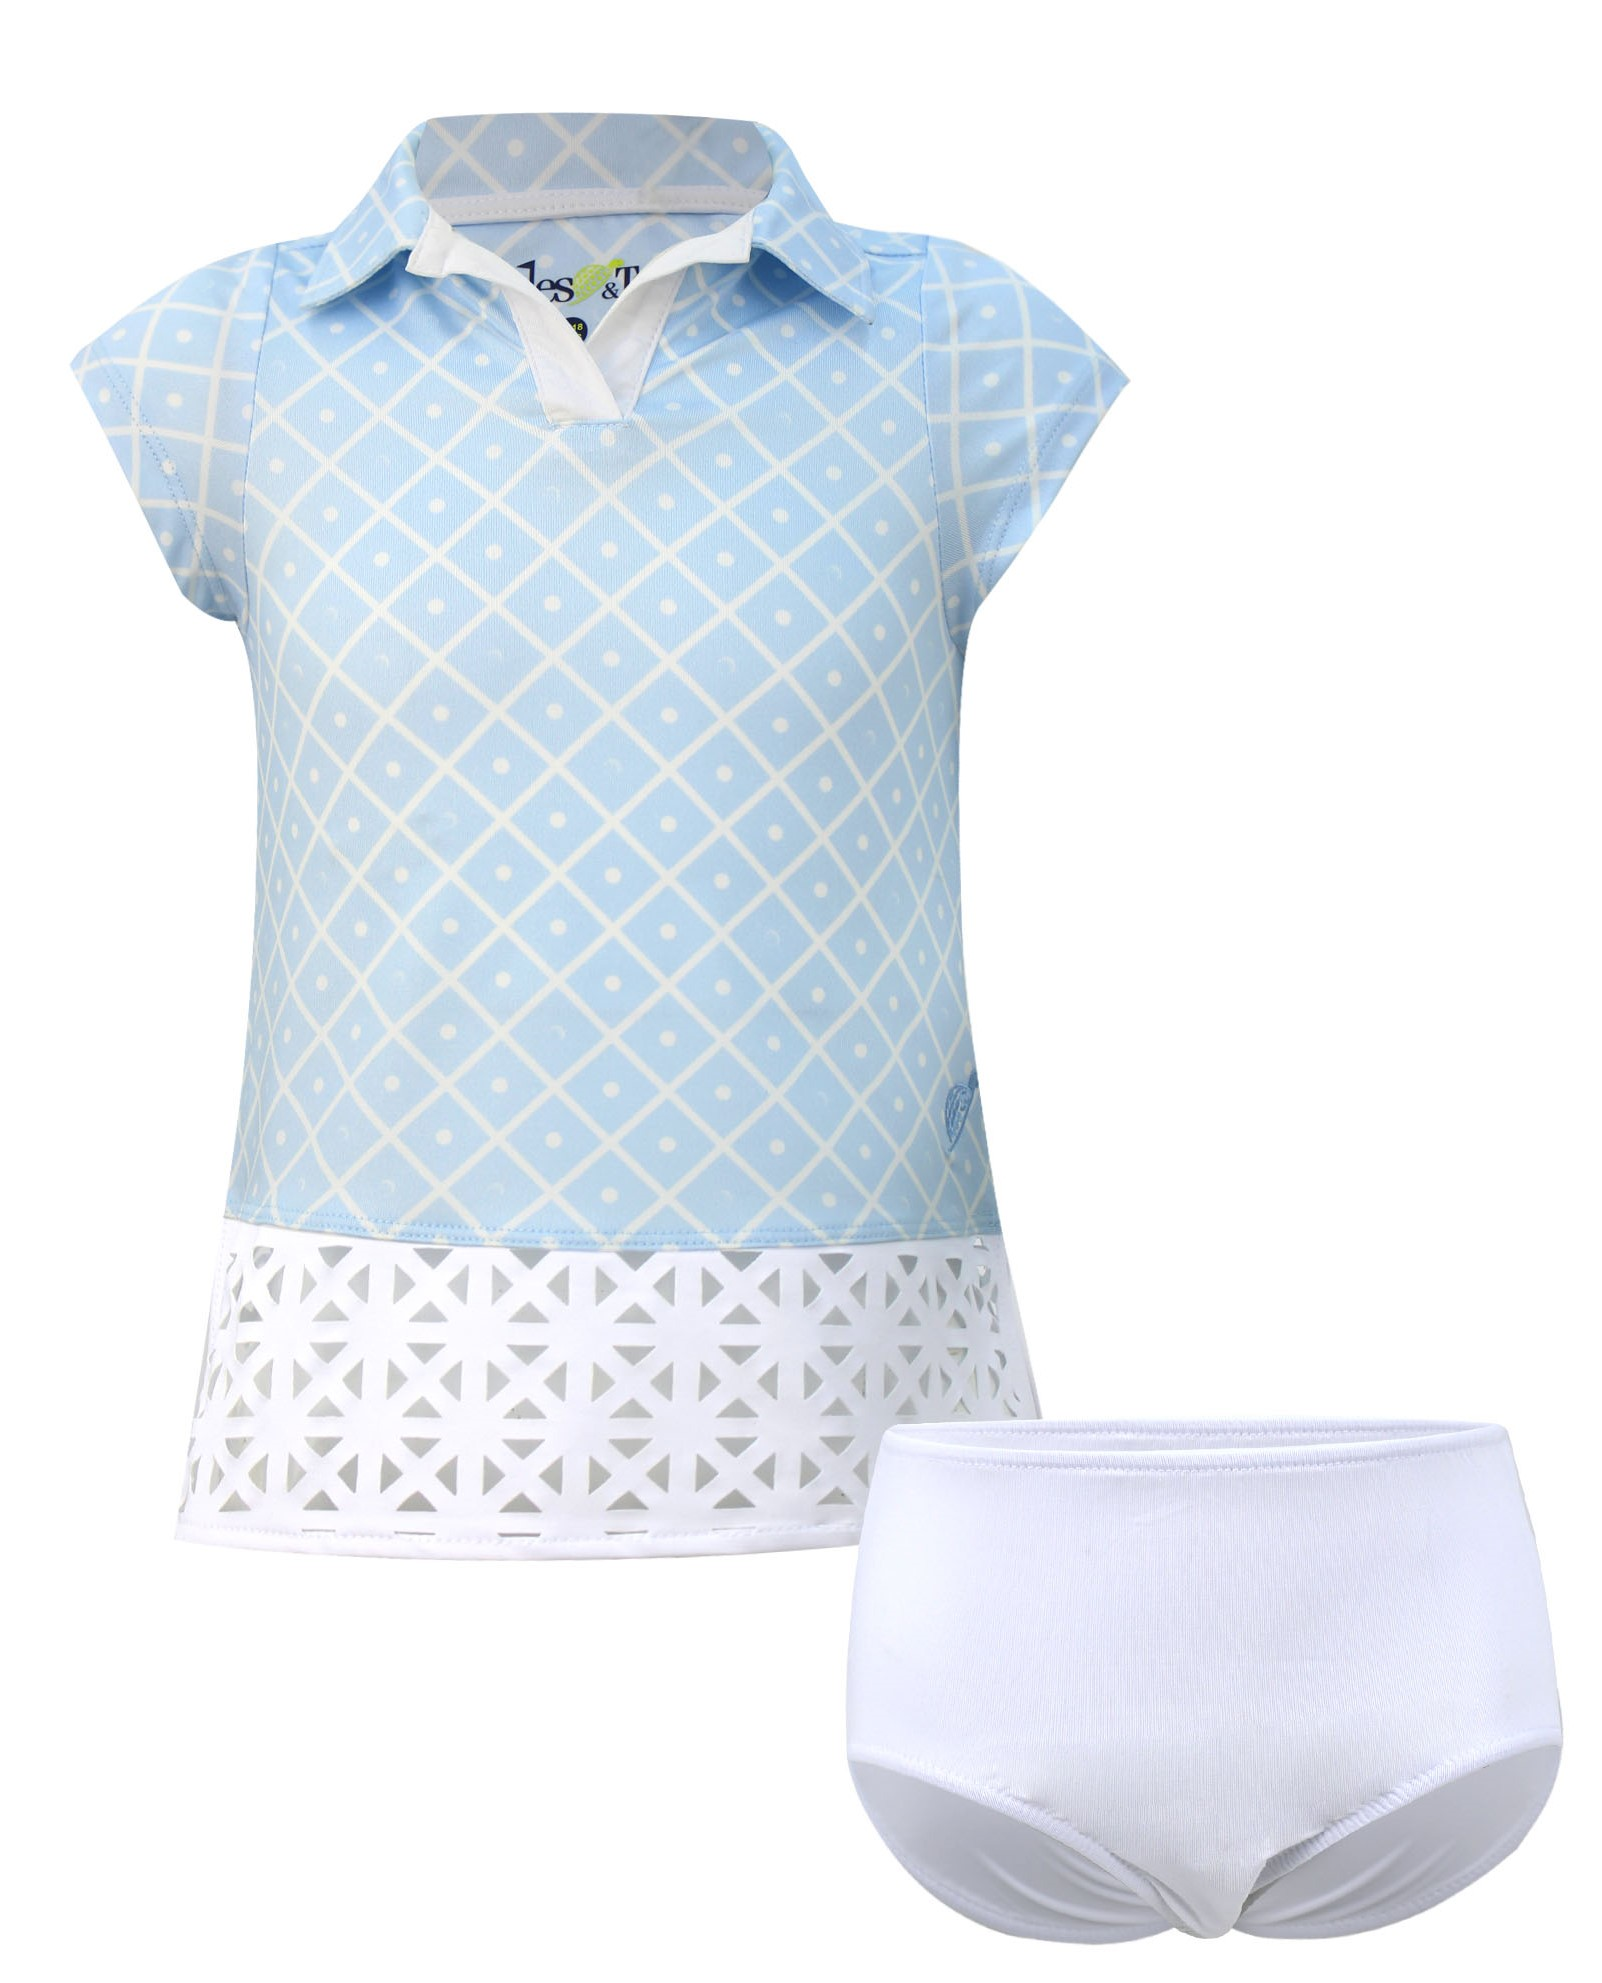 Charlotte  Short Sleeve Infant & Toddler  Golf And Tennis Dress In Blue Diamond On The Green Print